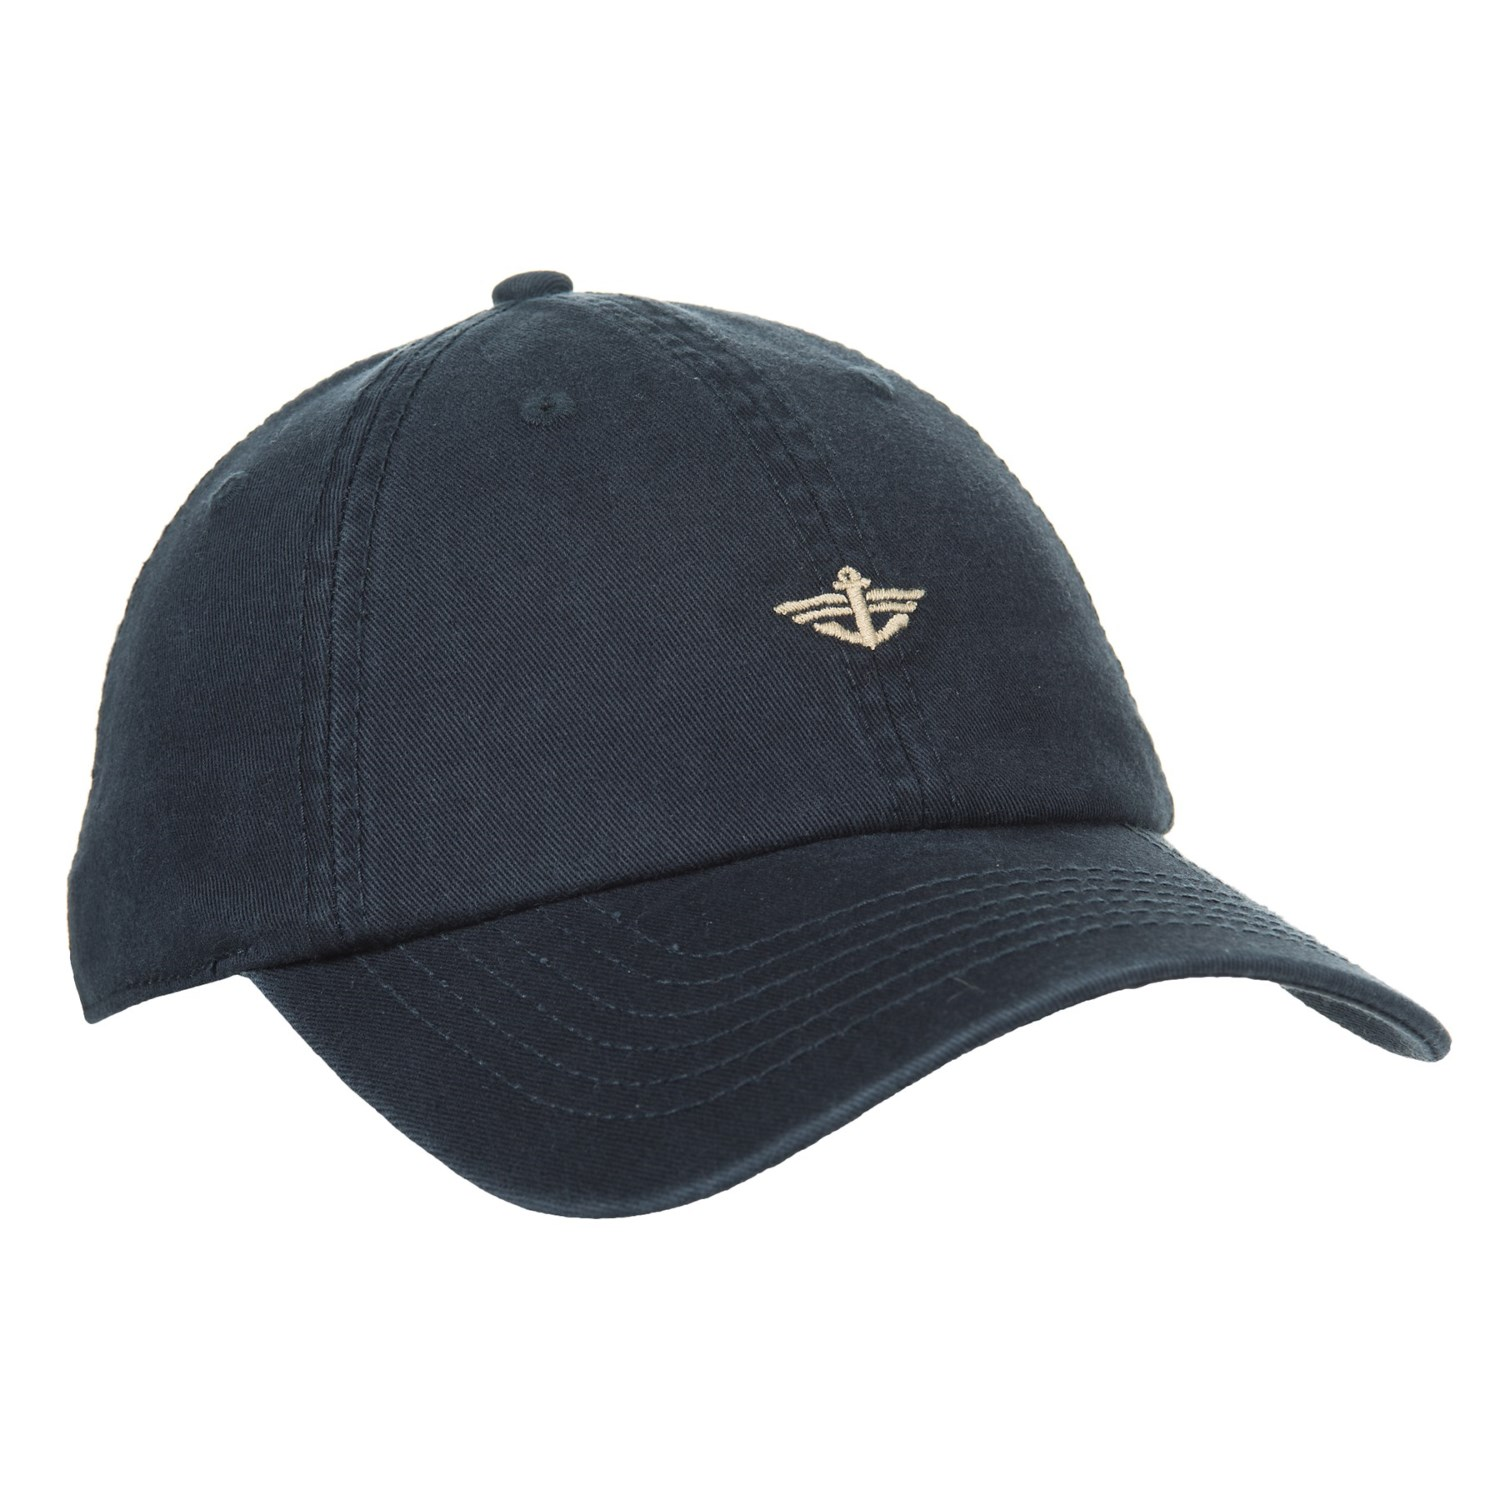 Dockers Washed Twill Baseball Cap (For Men) - Save 82% 981fd479f58